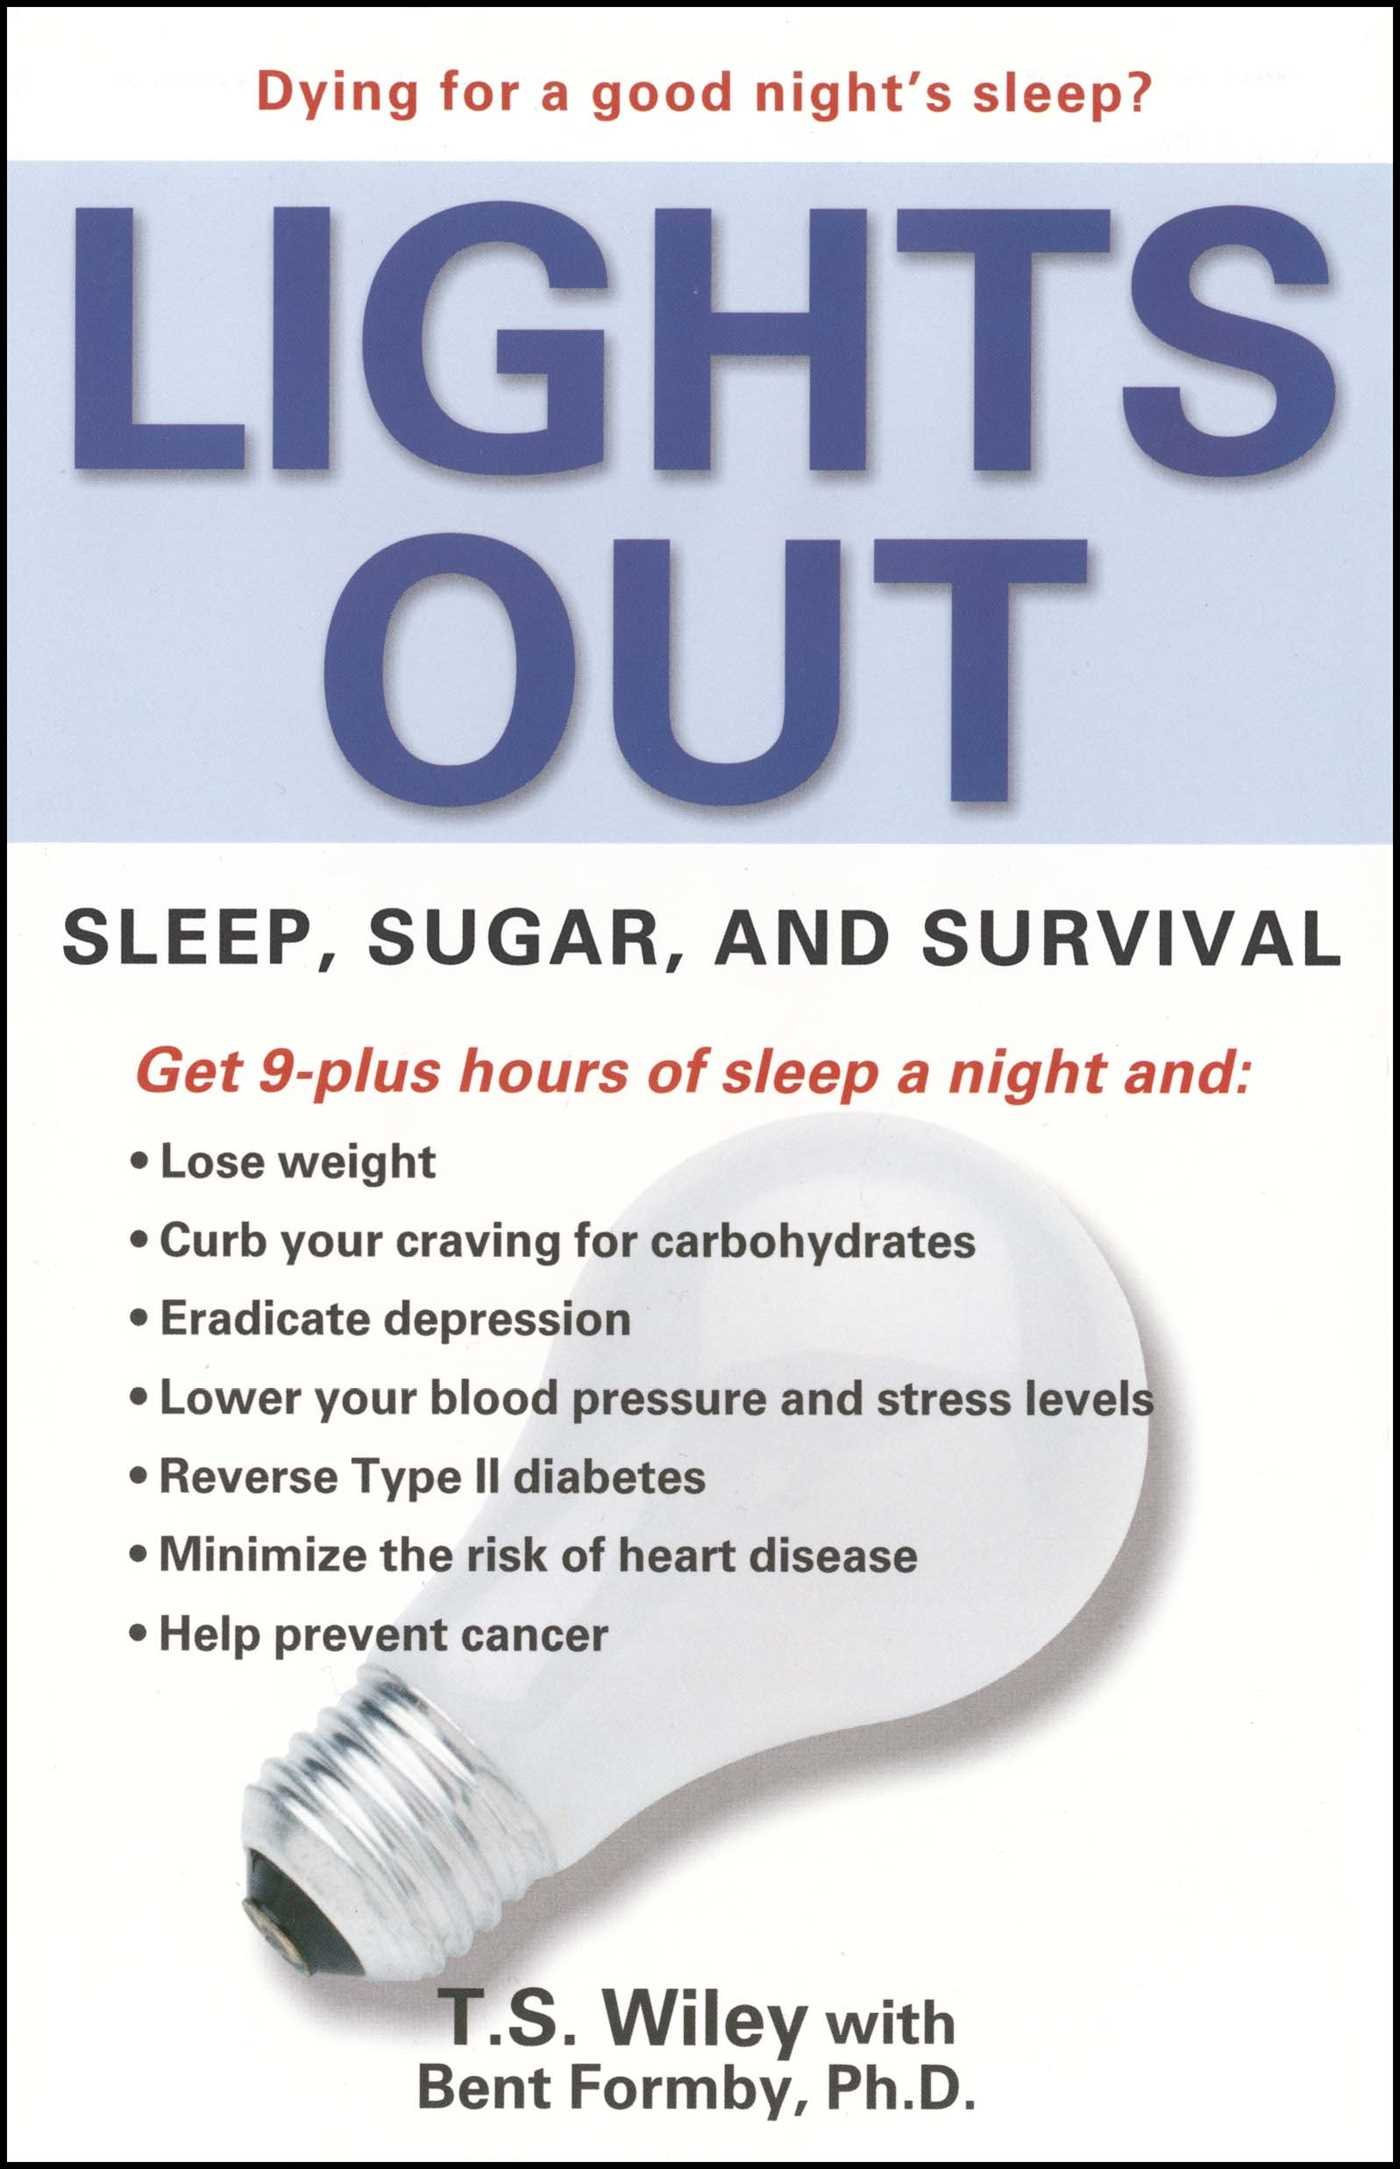 lights out: sleep, sugar, and survival - By T.S. WileyWith research gleaned from the National Institutes of Health, T.S. Wiley and Bent Formby deliver staggering findings: Americans really are sick from being tired. Diabetes, heart disease, cancer, and depression are rising in our population. We're literally dying for a good night's sleep.Our lifestyle wasn't always this way. It began with the invention of the lightbulb.When we don't get enough sleep in sync with seasonal light exposure, we fundamentally alter a balance of nature that has been programmed into our physiology since Day One. This delicate biological rhythm rules the hormones and neurotransmitters that determine appetite, fertility, and mental and physical health. When we rely on artificial light to extend our day until 11 PM, midnight, and beyond, we fool our bodies into living in a perpetual state of summer. Anticipating the scarce food supply and forced inactivity of winter, our bodies begin storing fat and slowing metabolism to sustain us through the months of hibernation and hunger that never arrive.Our own survival instinct, honed over millennia, is now killing us.Wiley and Formby also reveal:+ That studies from our own government research prove the role of sleeplessness in diabetes, heart disease, cancer, infertility, mental illness, and premature aging;+ Why the carbohydrate-rich diets recommended by many health professionals are not only ridiculously ineffective but deadly;+ Why the lifesaving information that can turn things around is one of the best-kept secrets of our day.